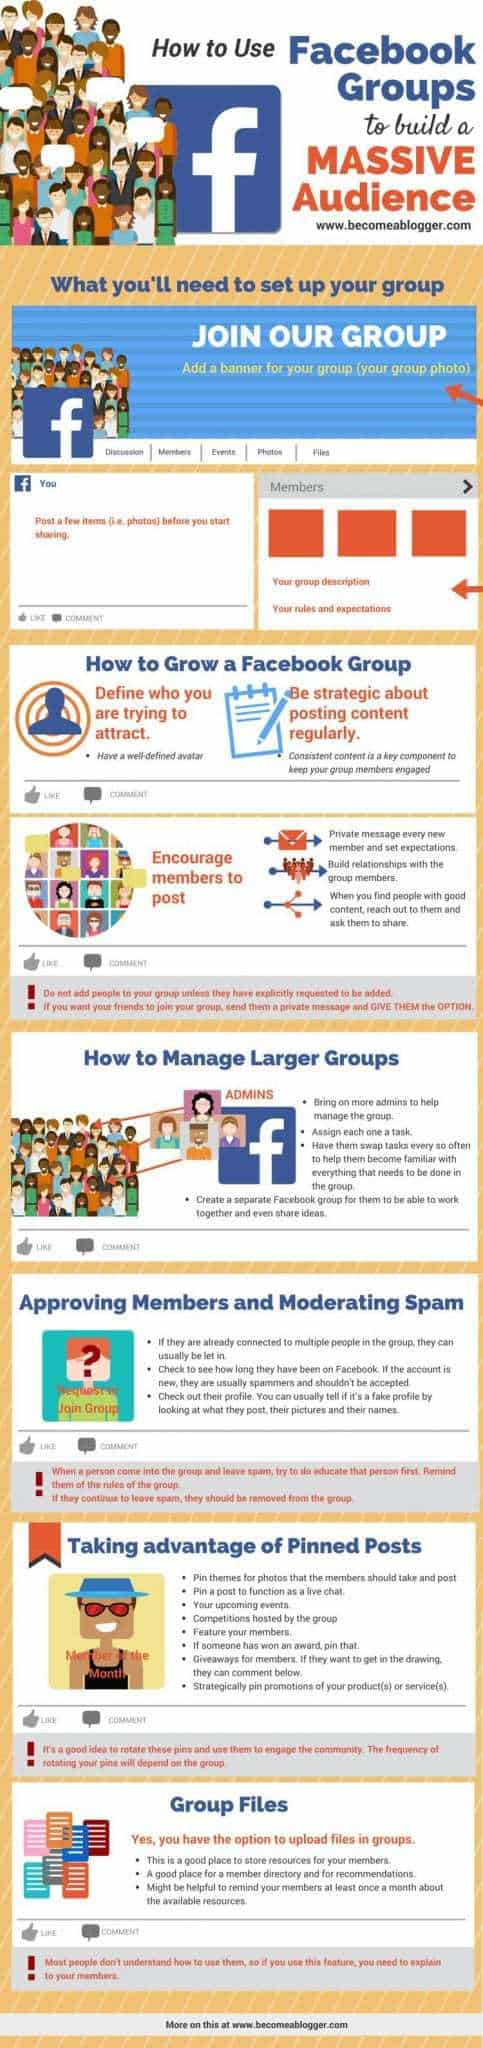 For more information, tips and a quick how-to guide on setting up your own Facebook group, check out this great infographic.